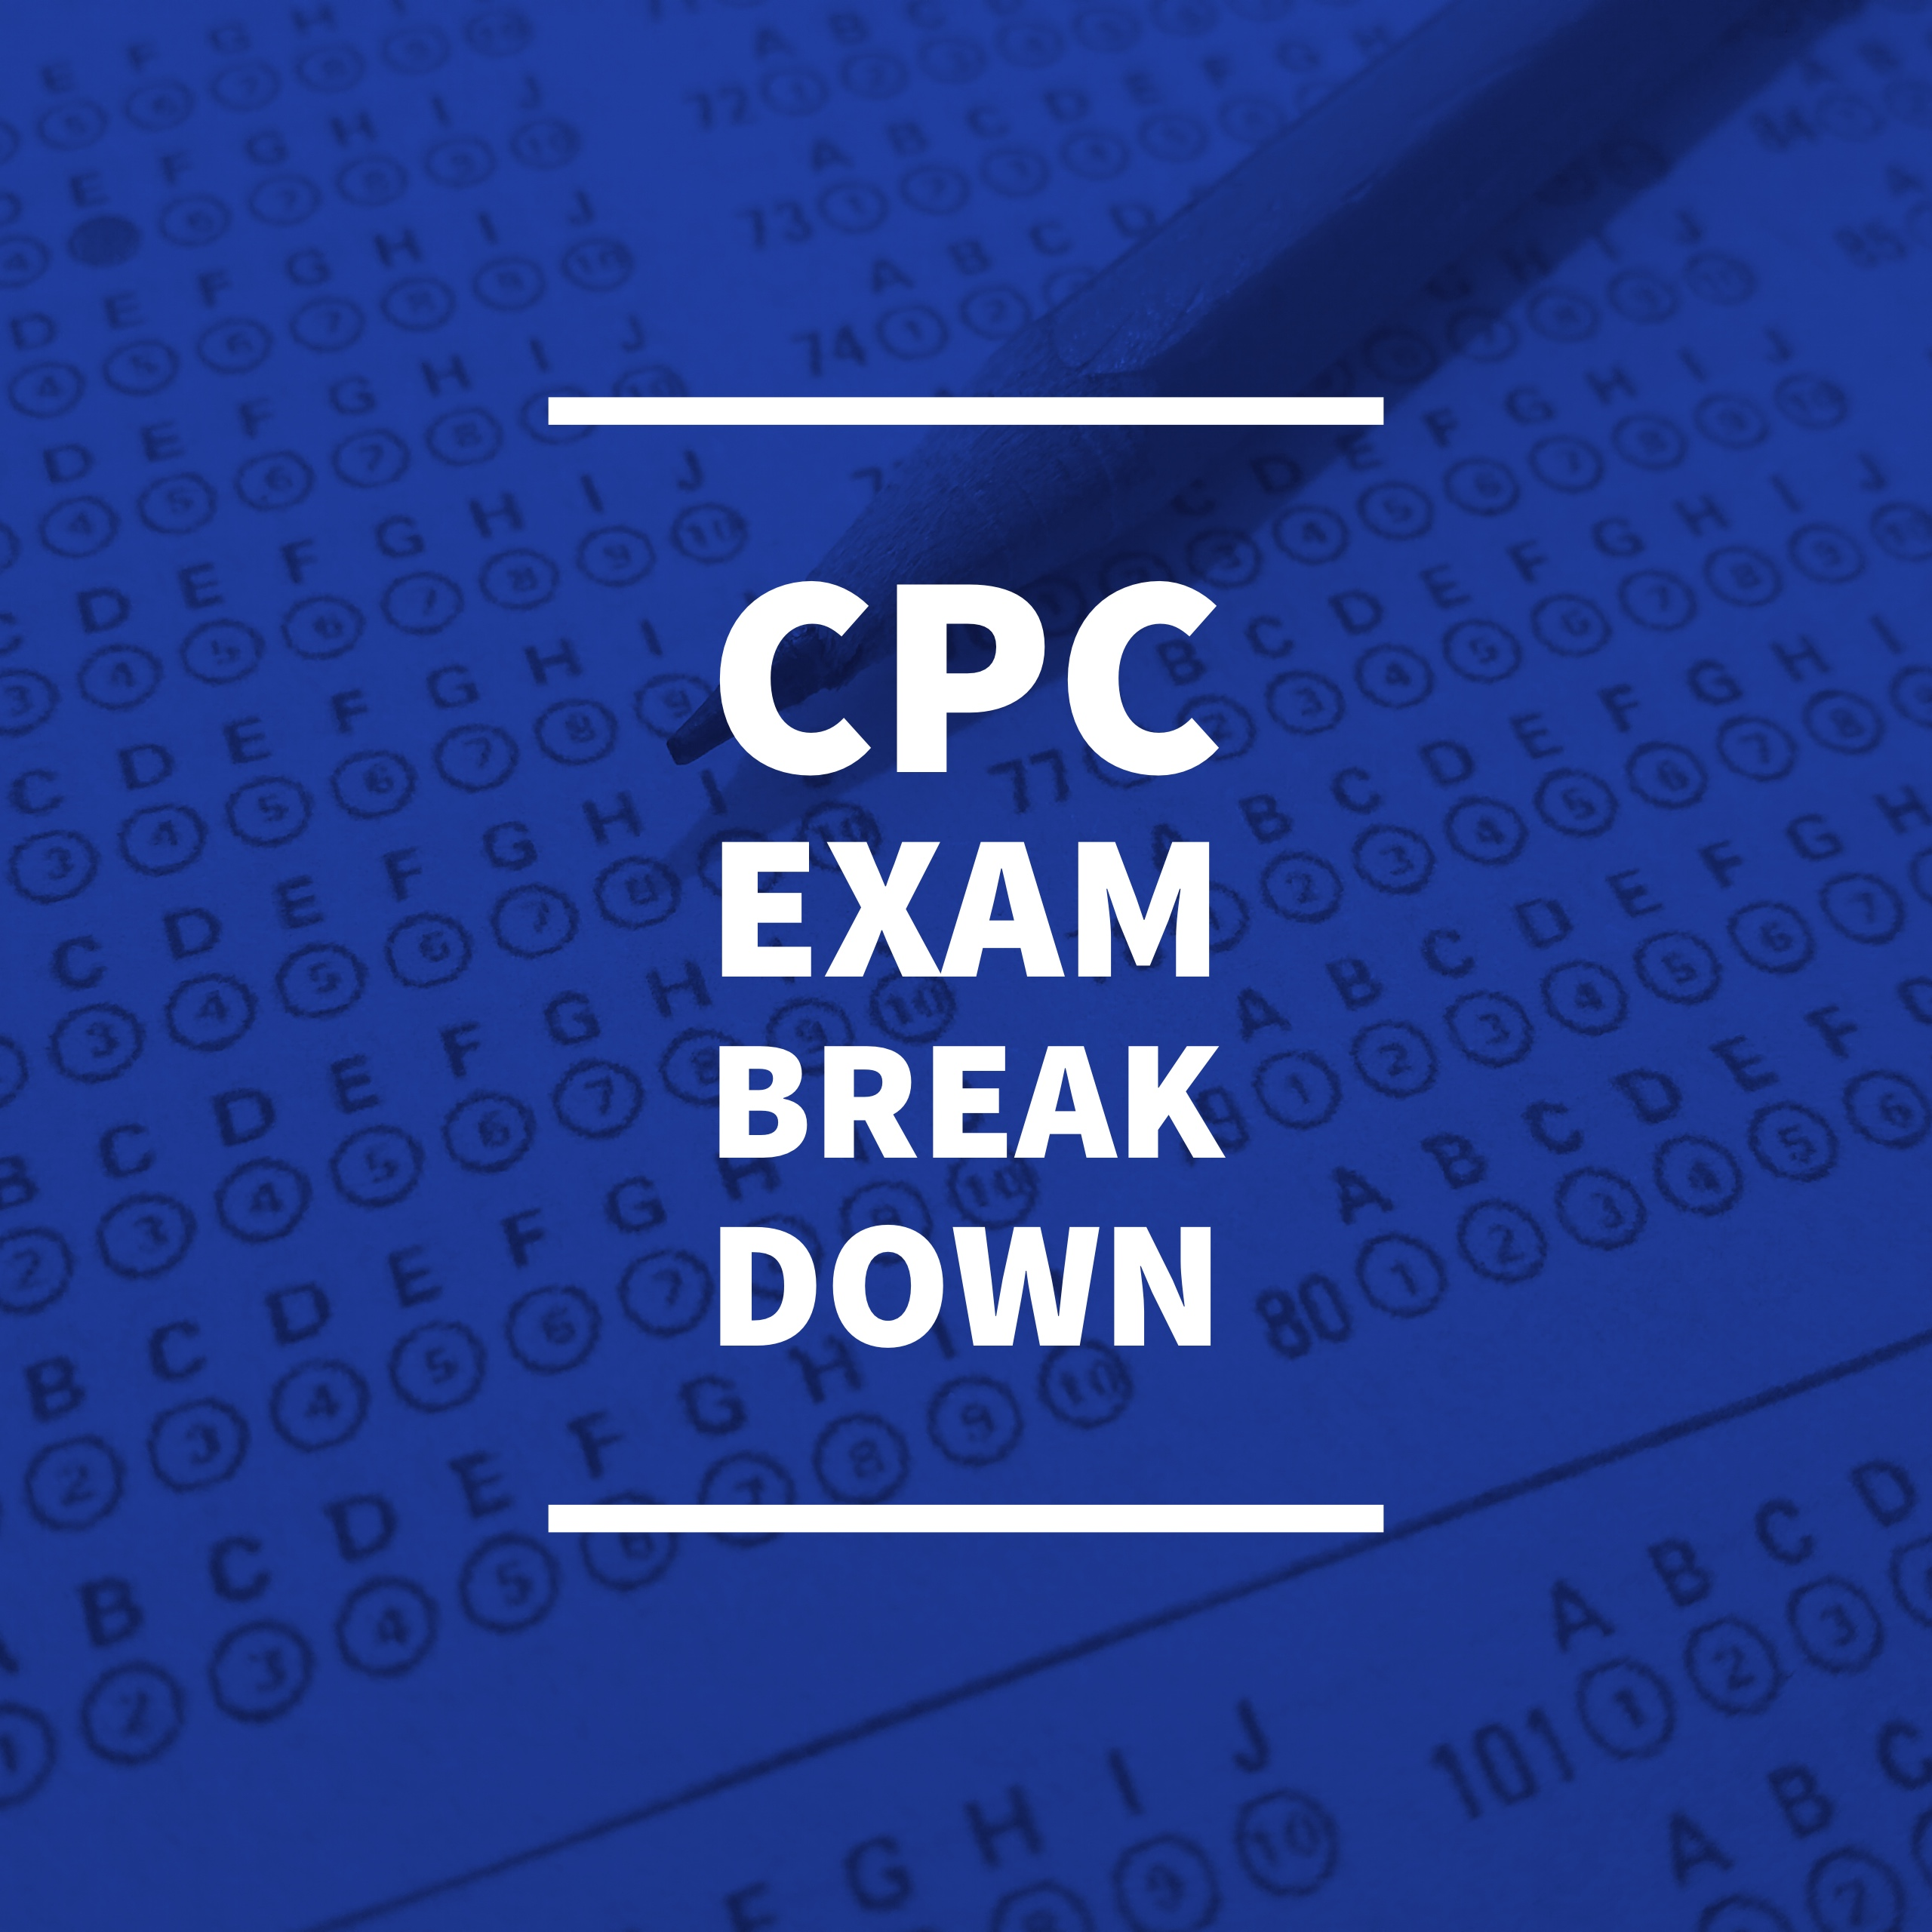 What's In The CPC Exam